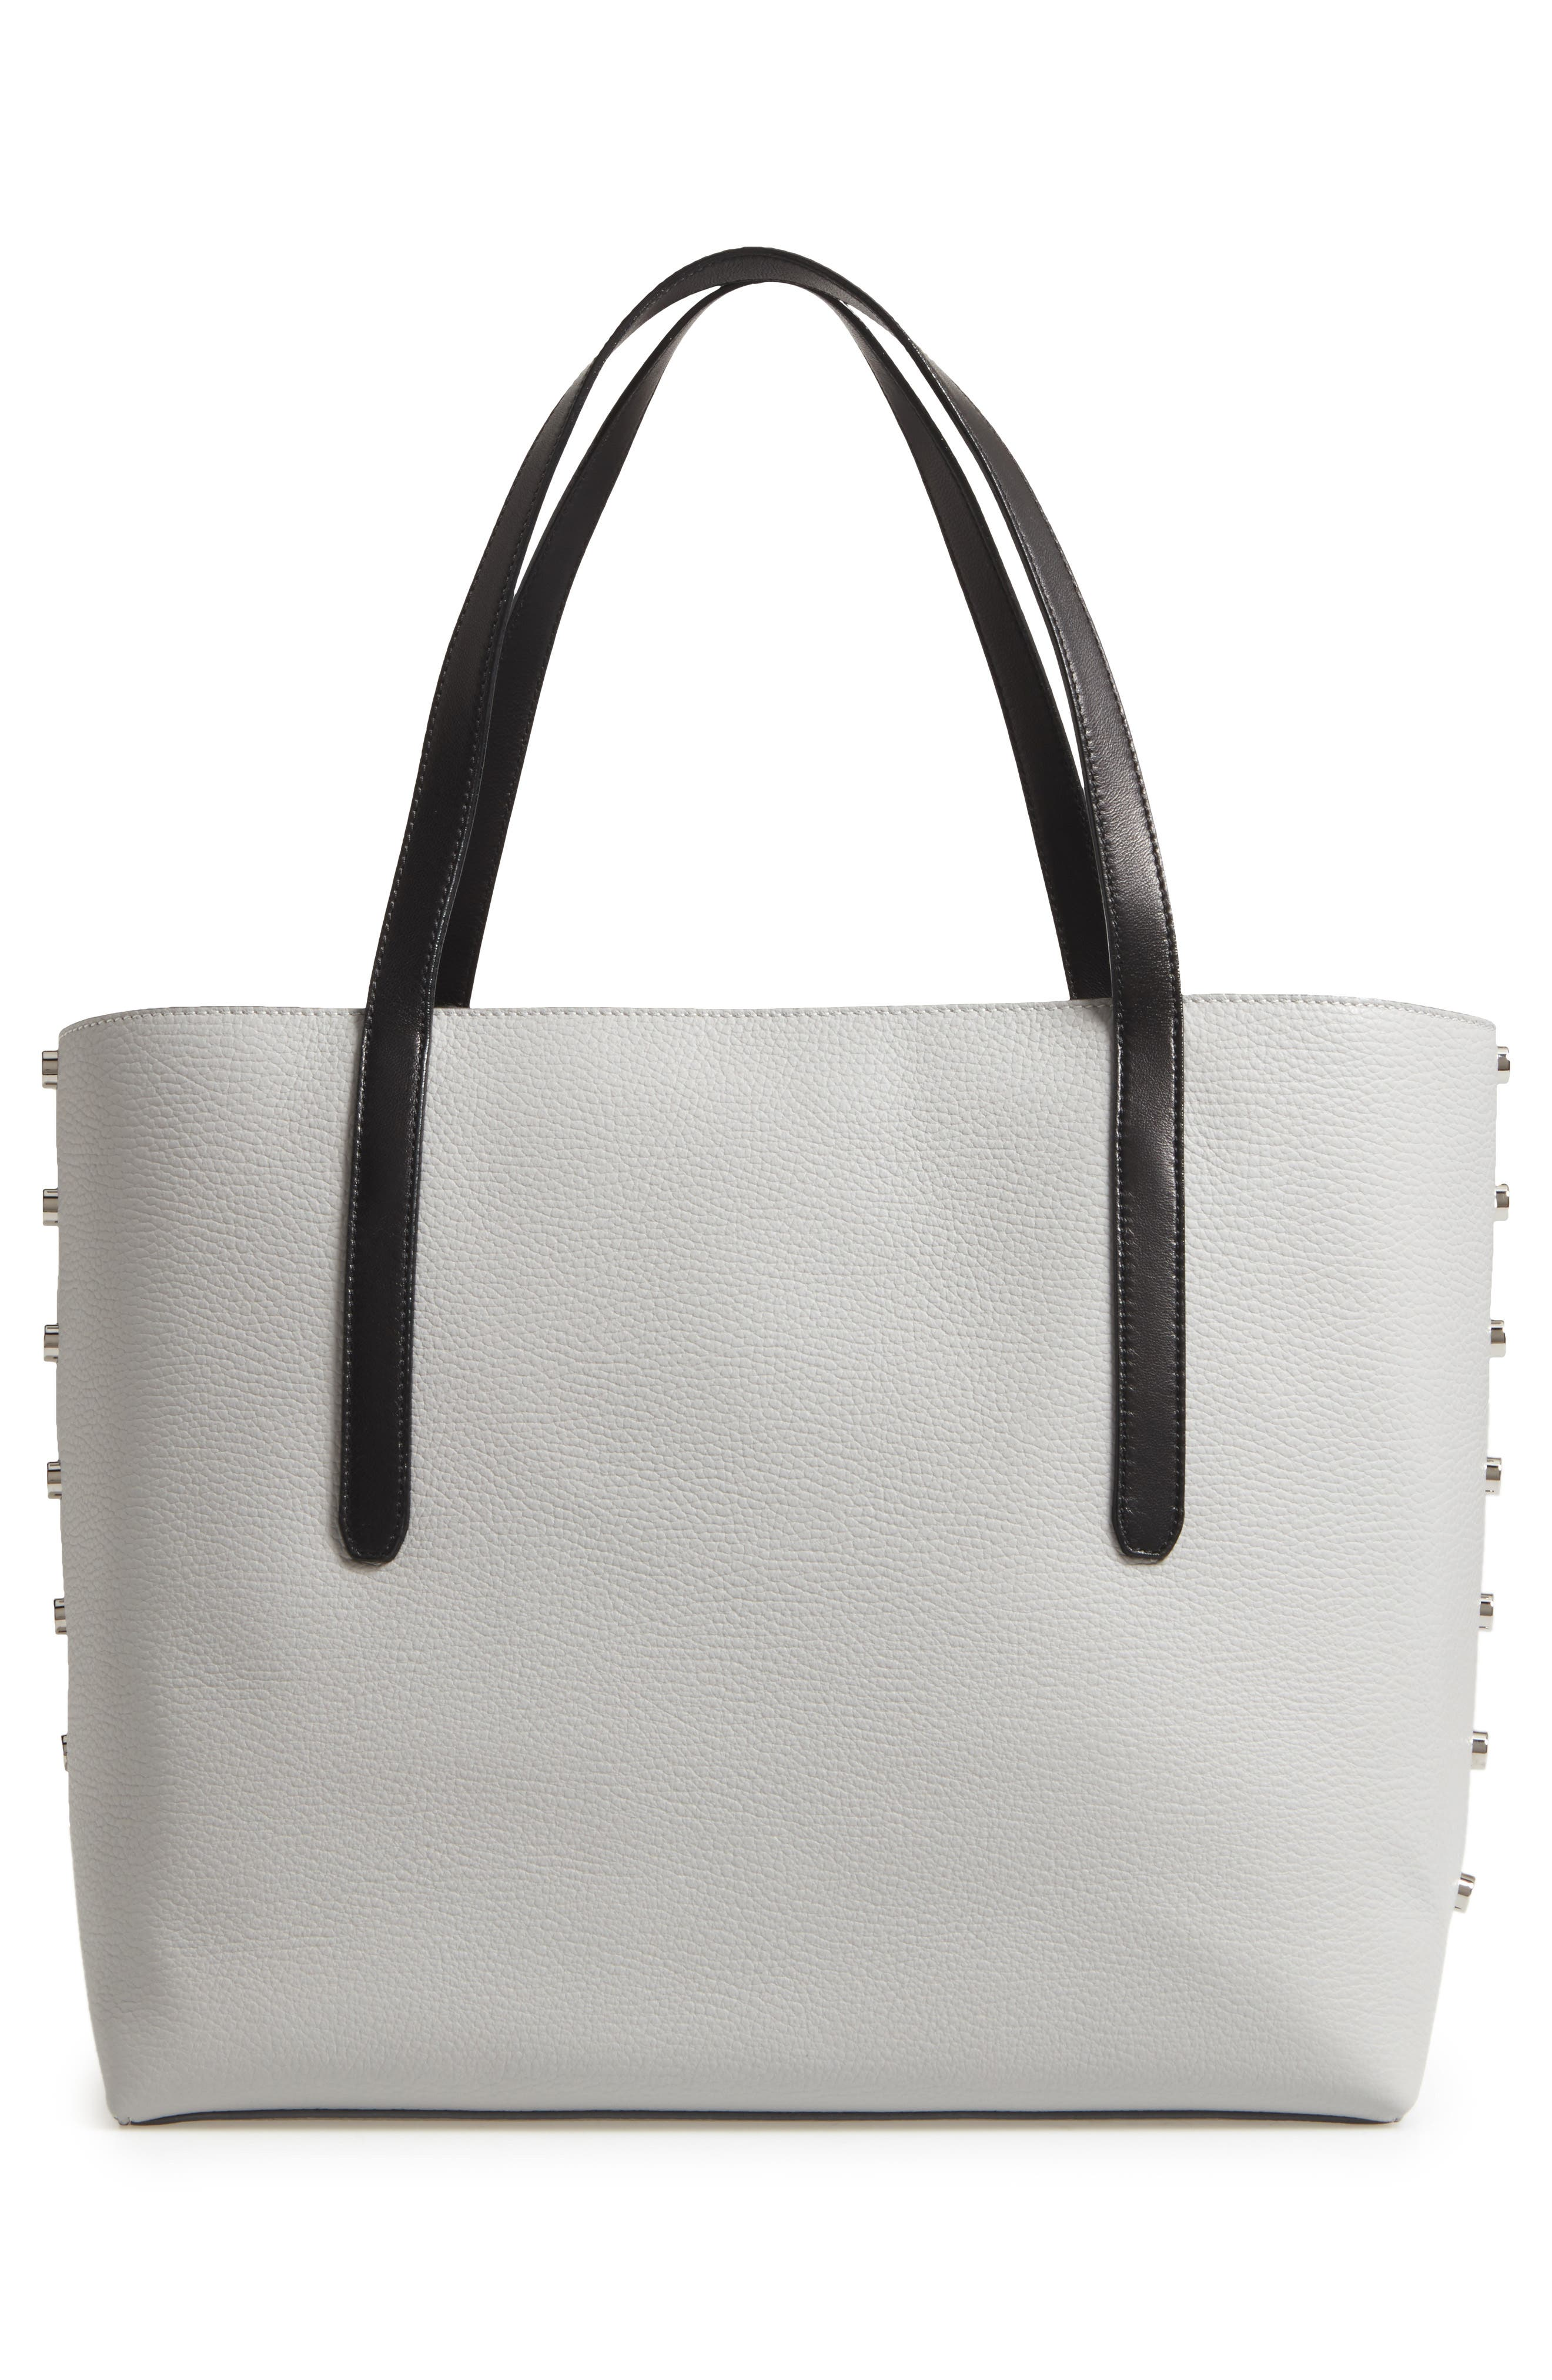 Twist East West Leather Tote,                             Alternate thumbnail 3, color,                             040